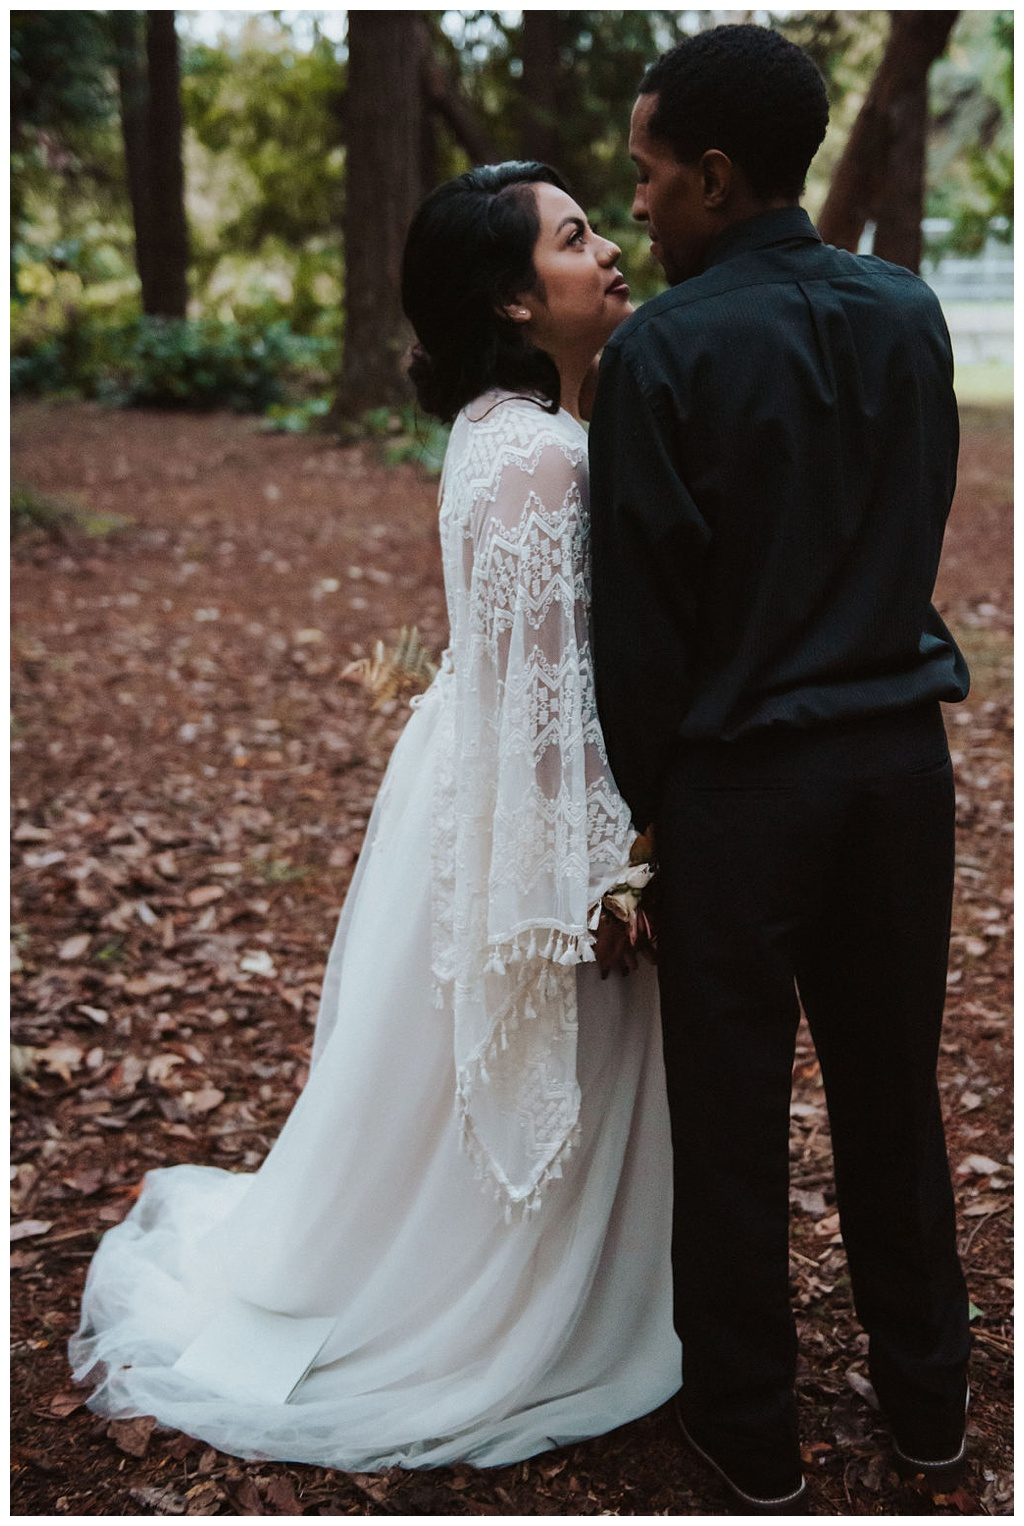 A wedded couple having a private moment in the woods after their elopement